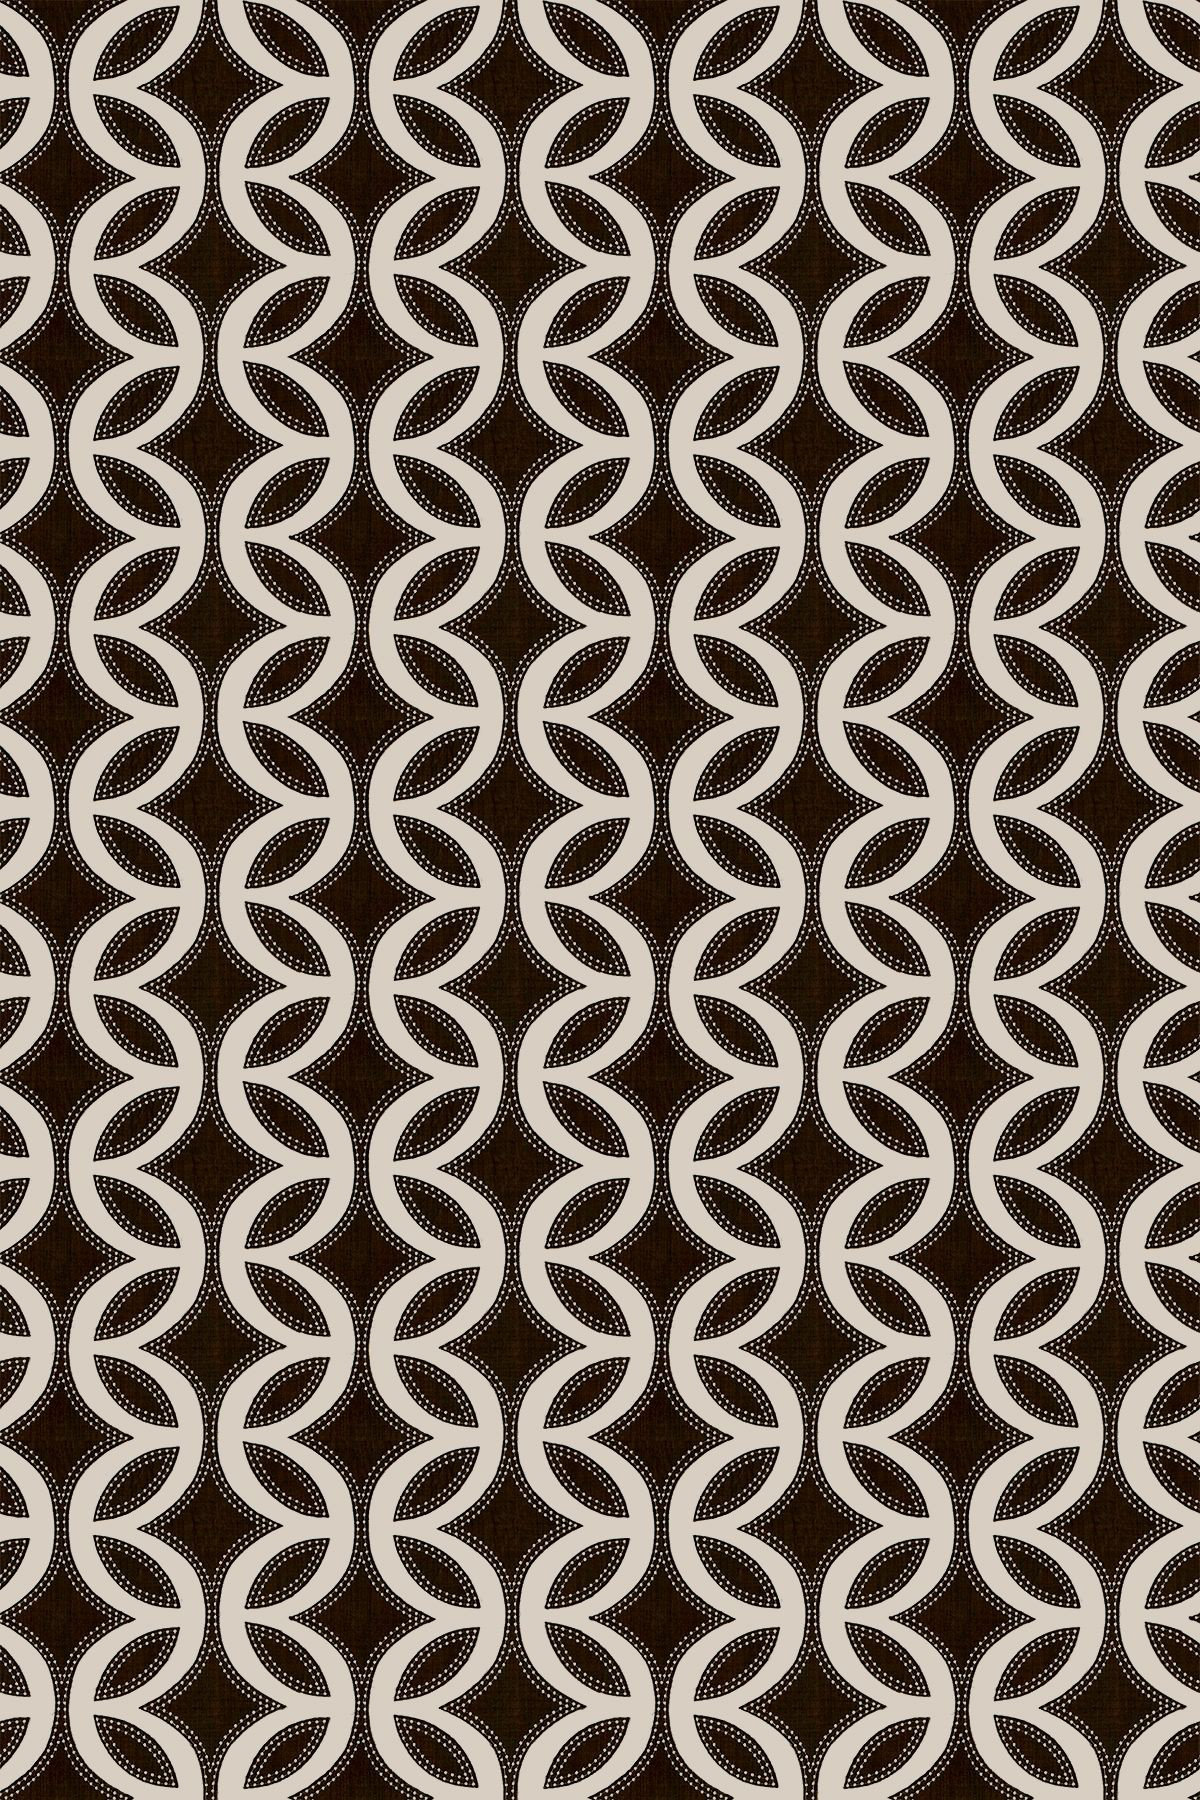 Caprice by harlequin wallpaper direct for Wallpaper direct